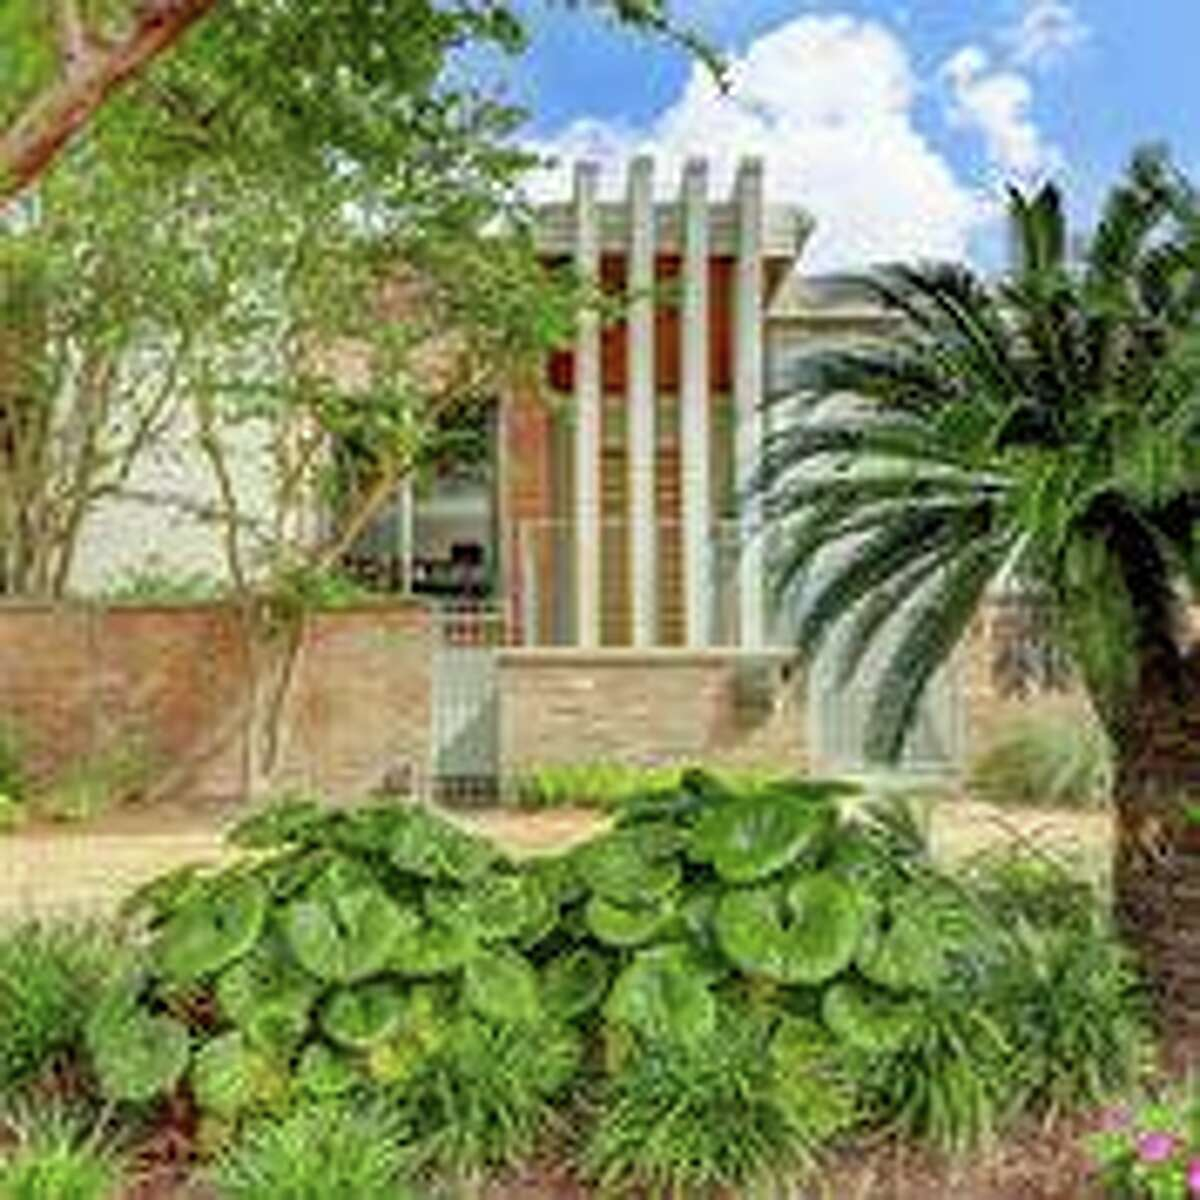 This home on Braeswood will be on the Modern Architecture + Design Society 2020 Modern Homes Tour on June 27, 2020.